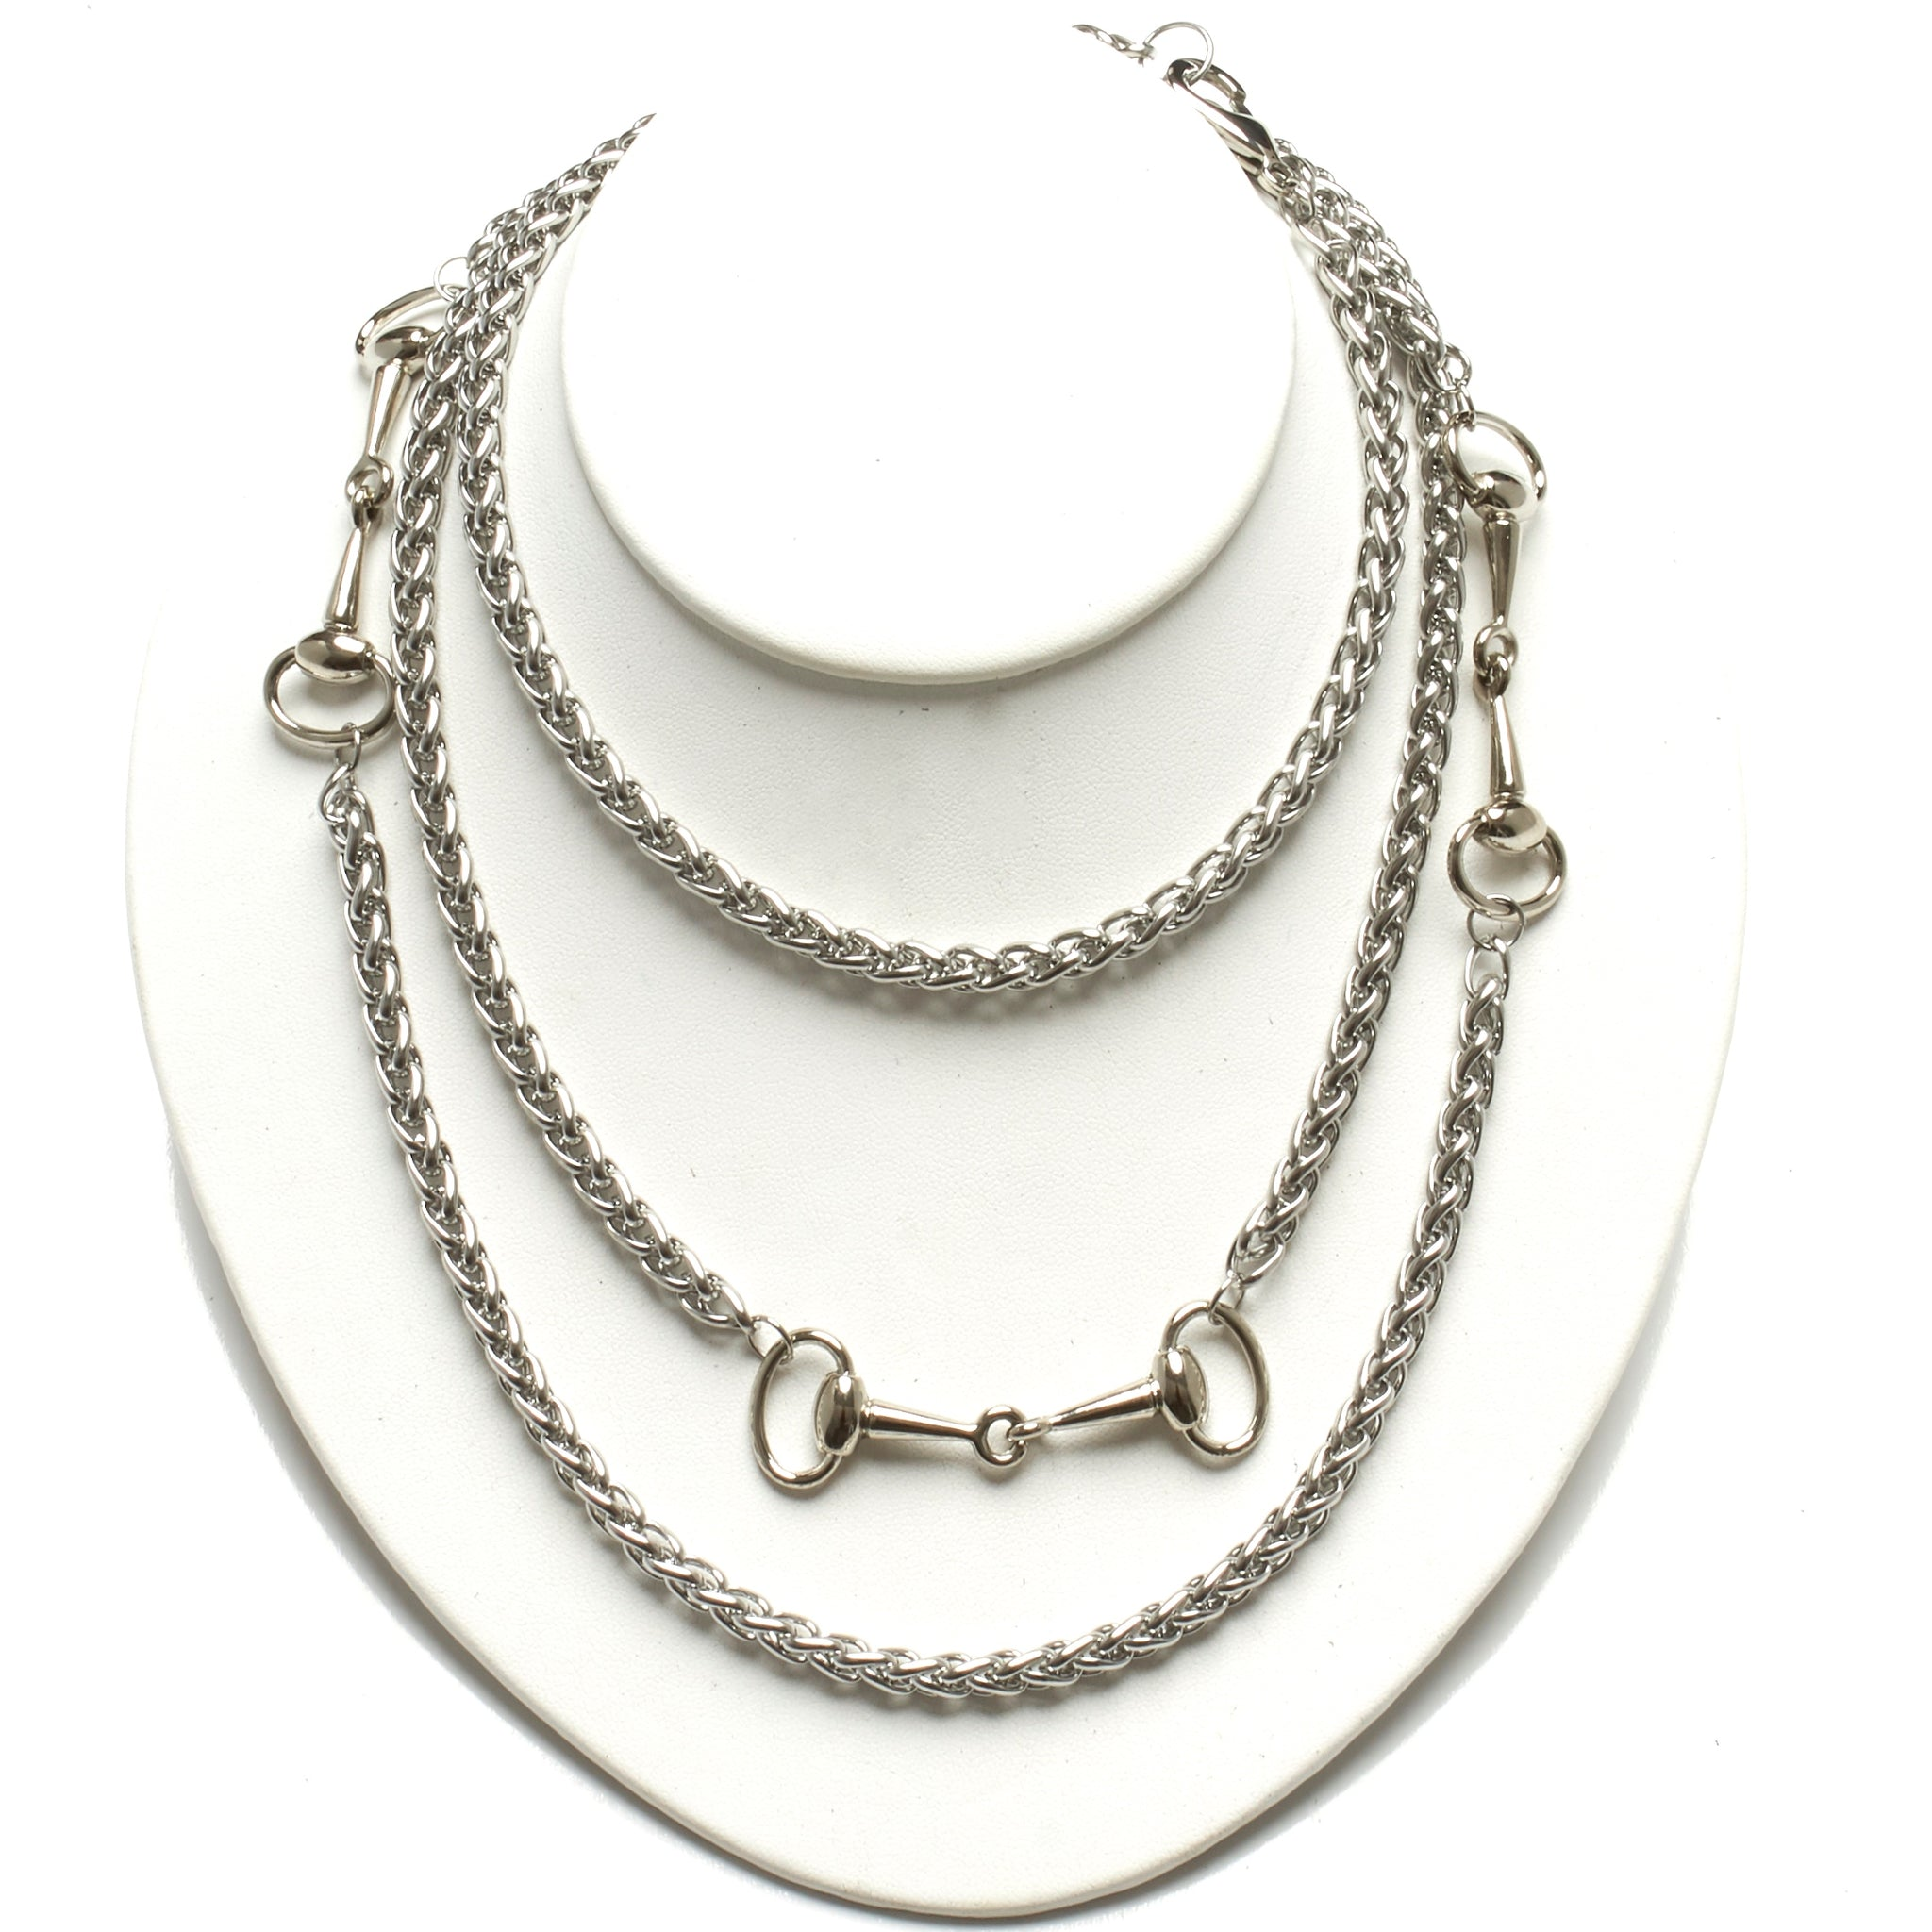 LONG STAINLESS STEEL NECKLACE ADORNED WITH THREE HORSE-BIT ACCENT HARDWARE. by nyet jewelry.